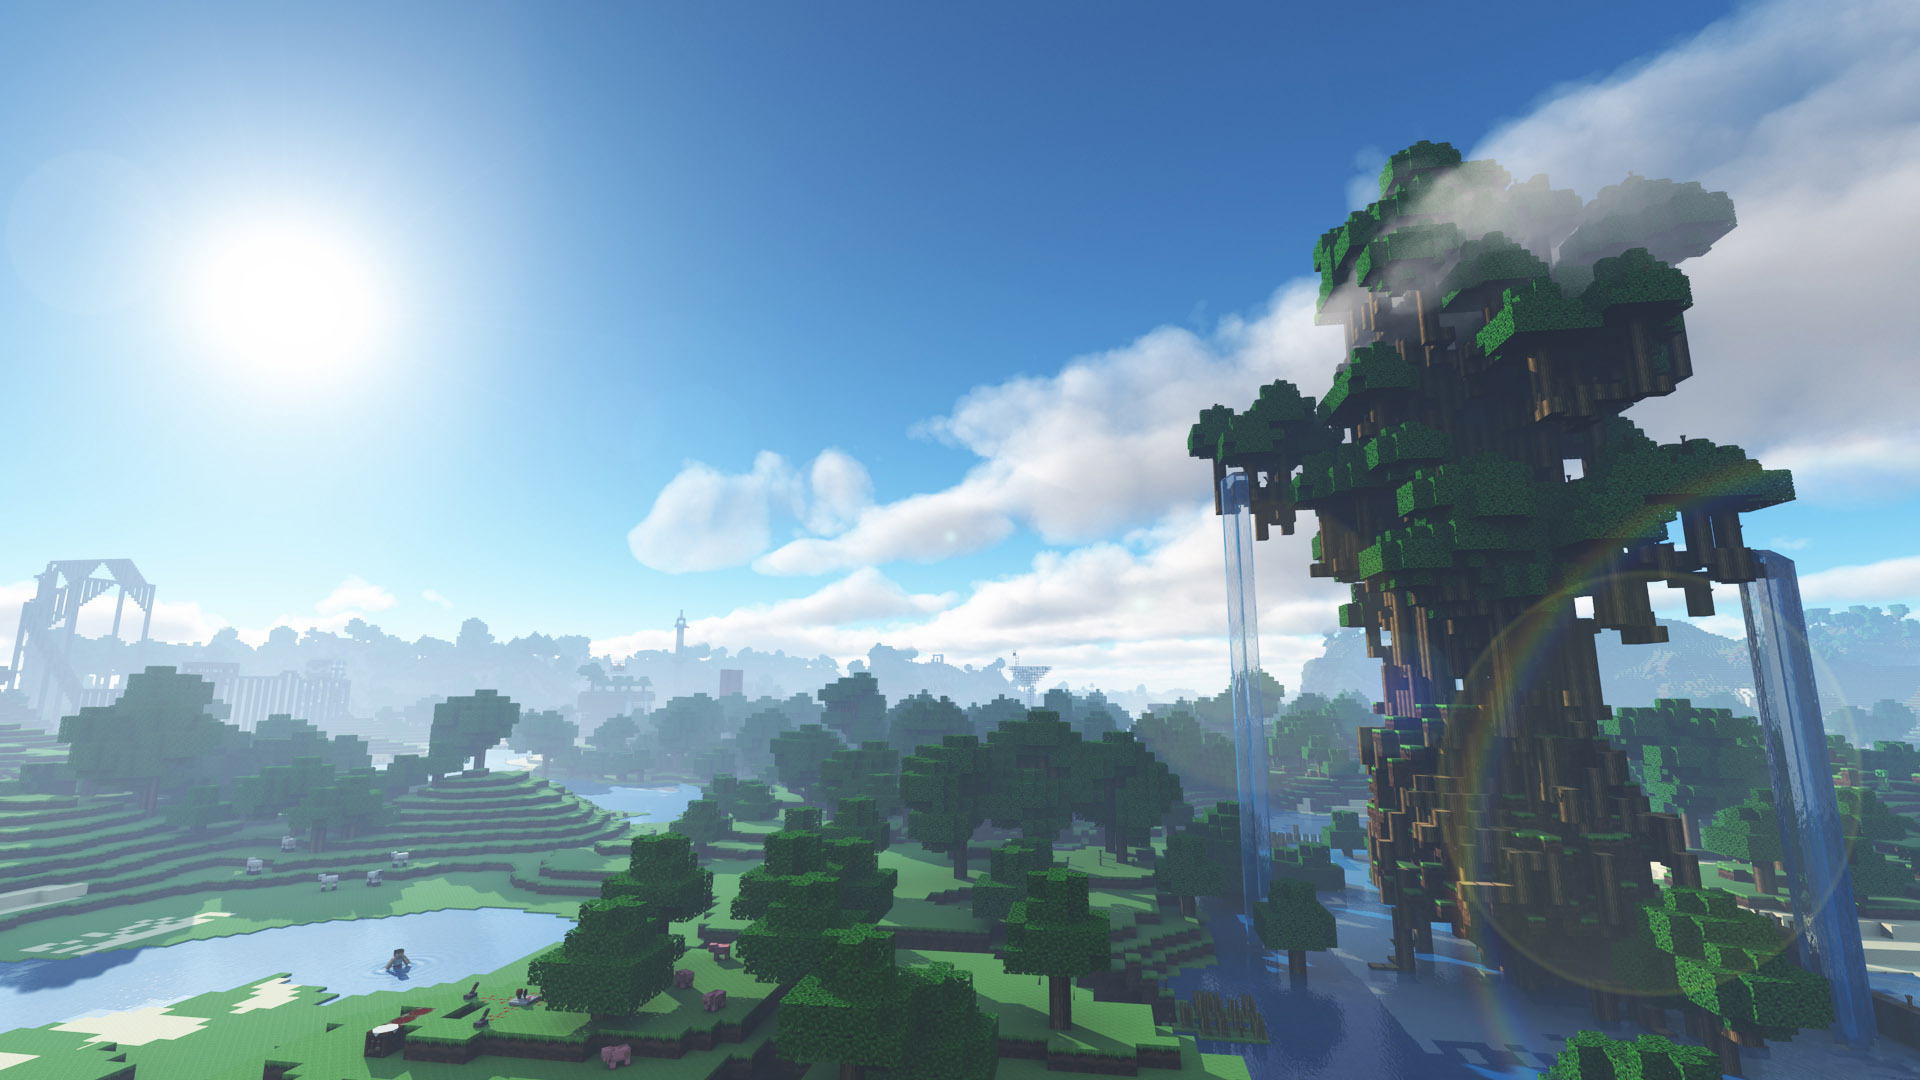 Download Wallpaper Minecraft Galaxy - Minecraft-Free-Wallpapers-045  Pictures_725542.jpg